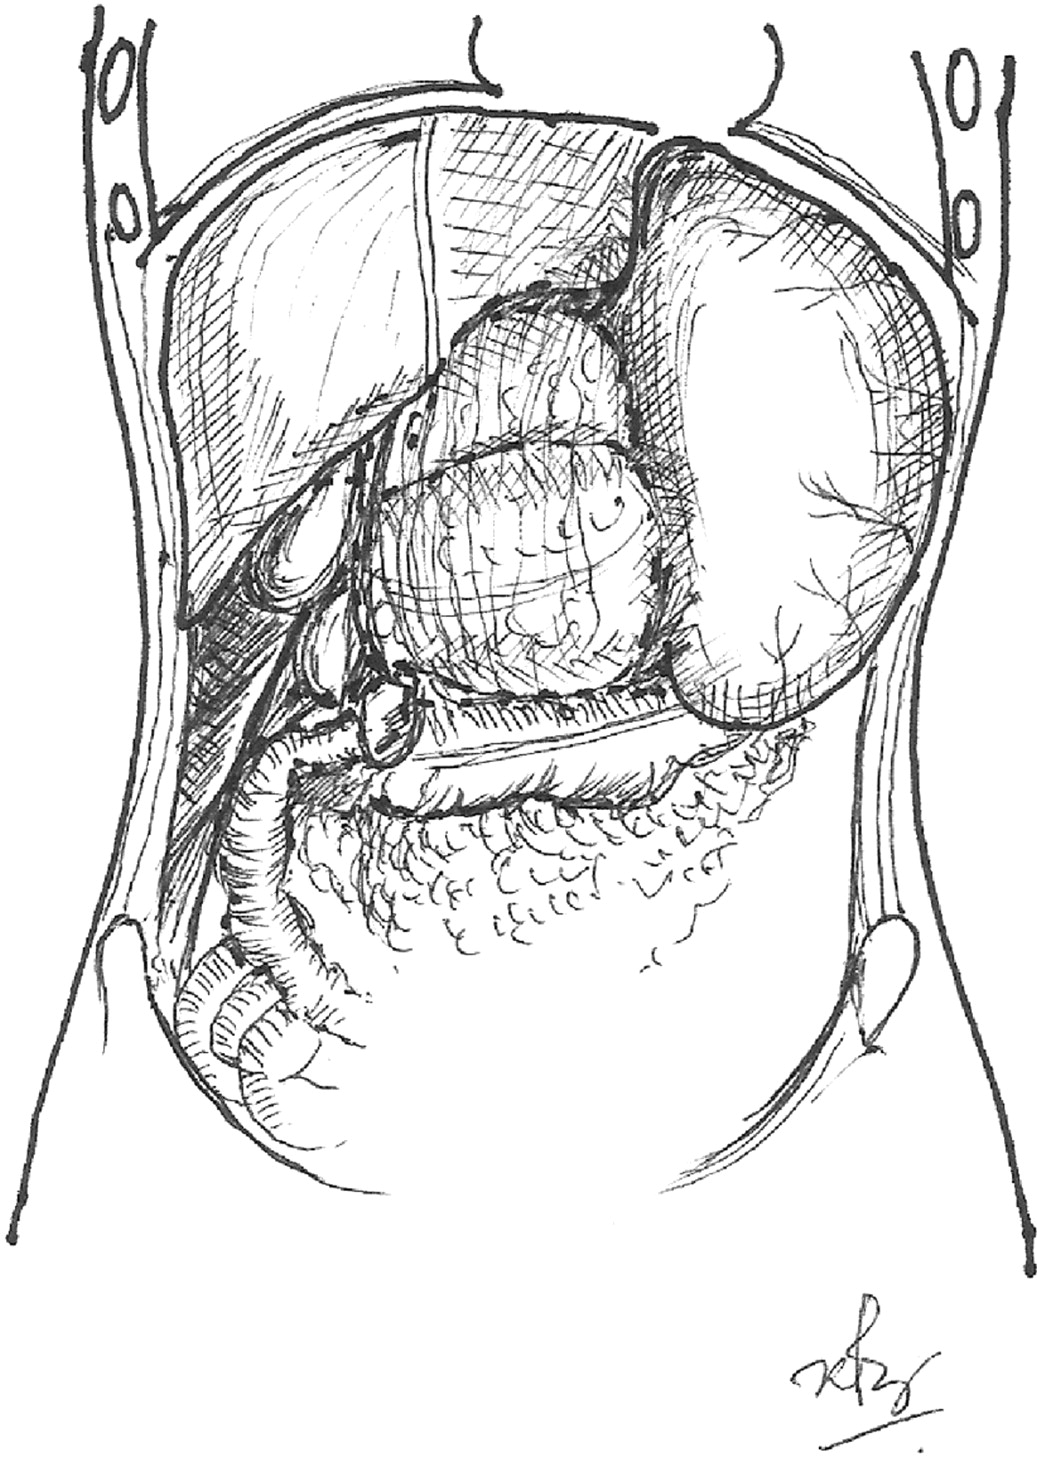 Gastric Outlet Obstruction From A Caecal Volvulus